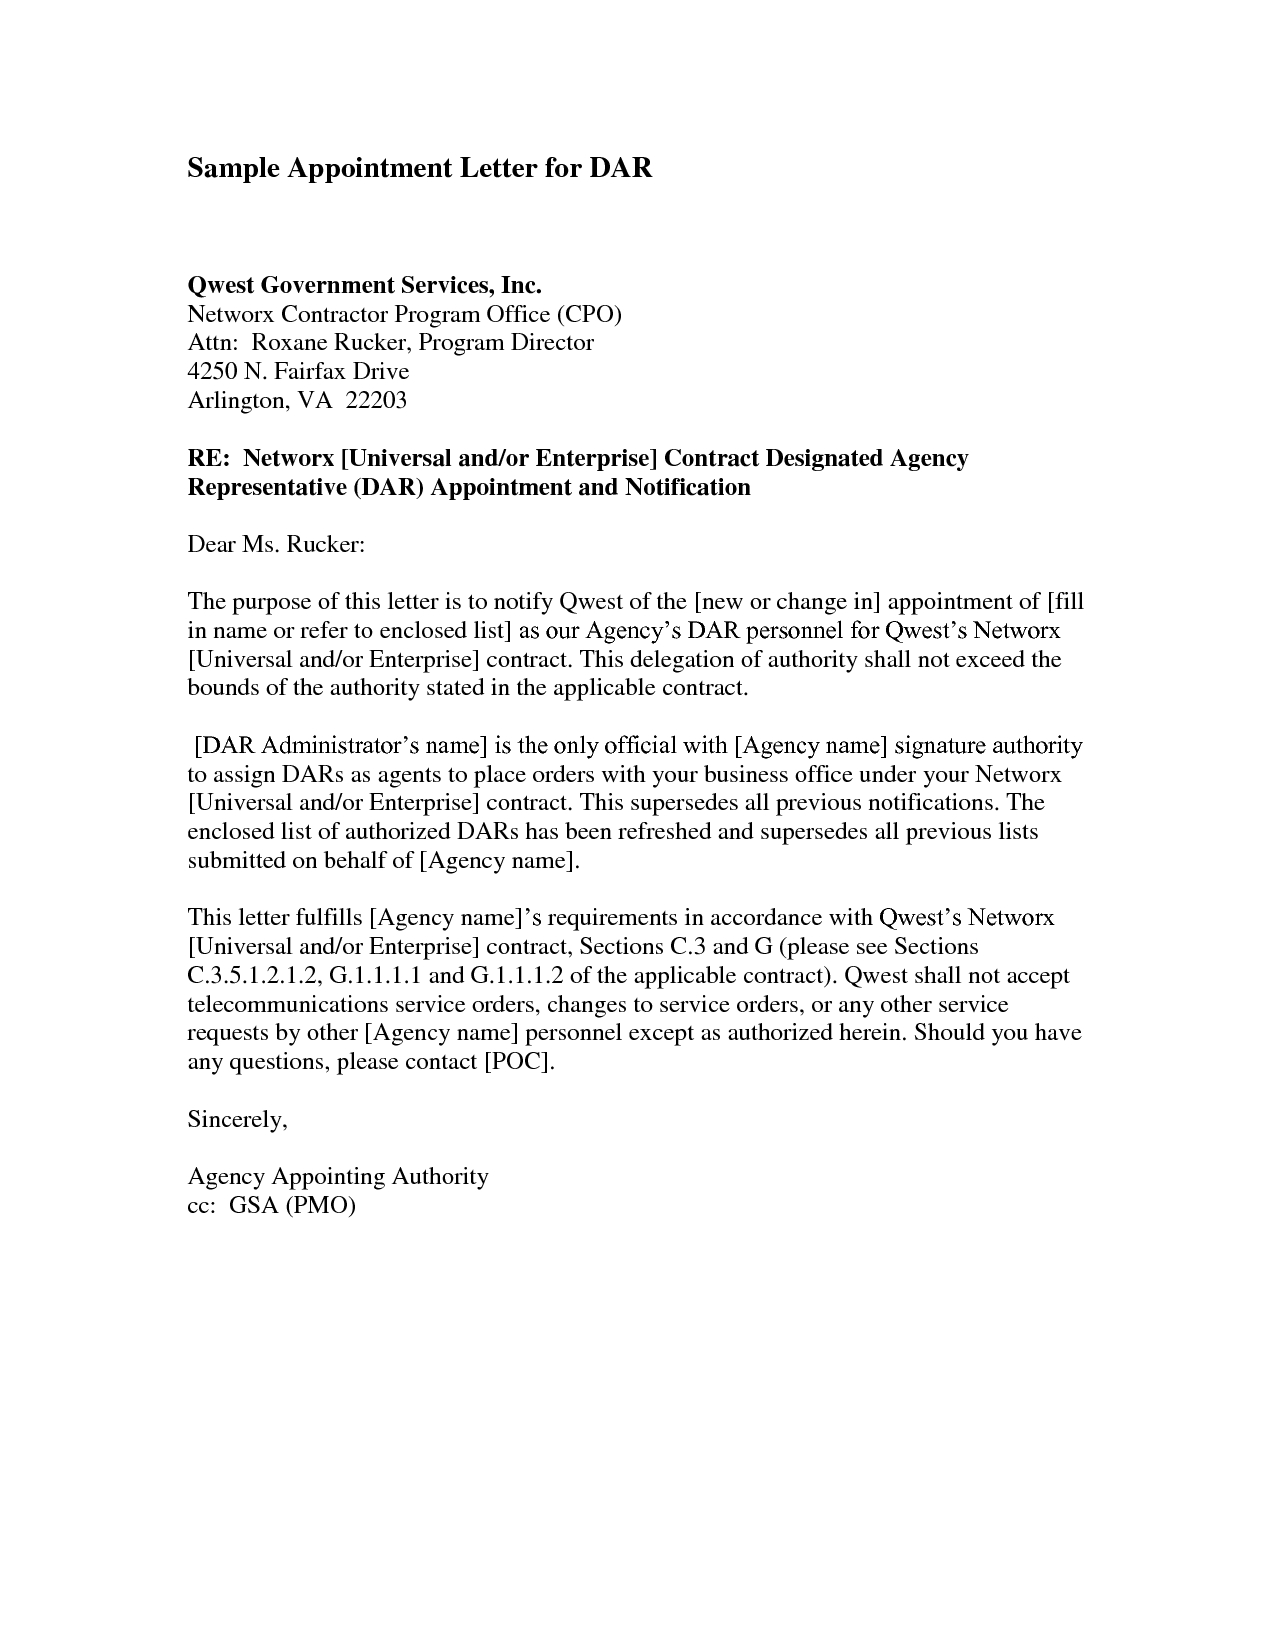 I Owe You Letter Template - Trustee Appointment Letter Director Trustee is Appointed or